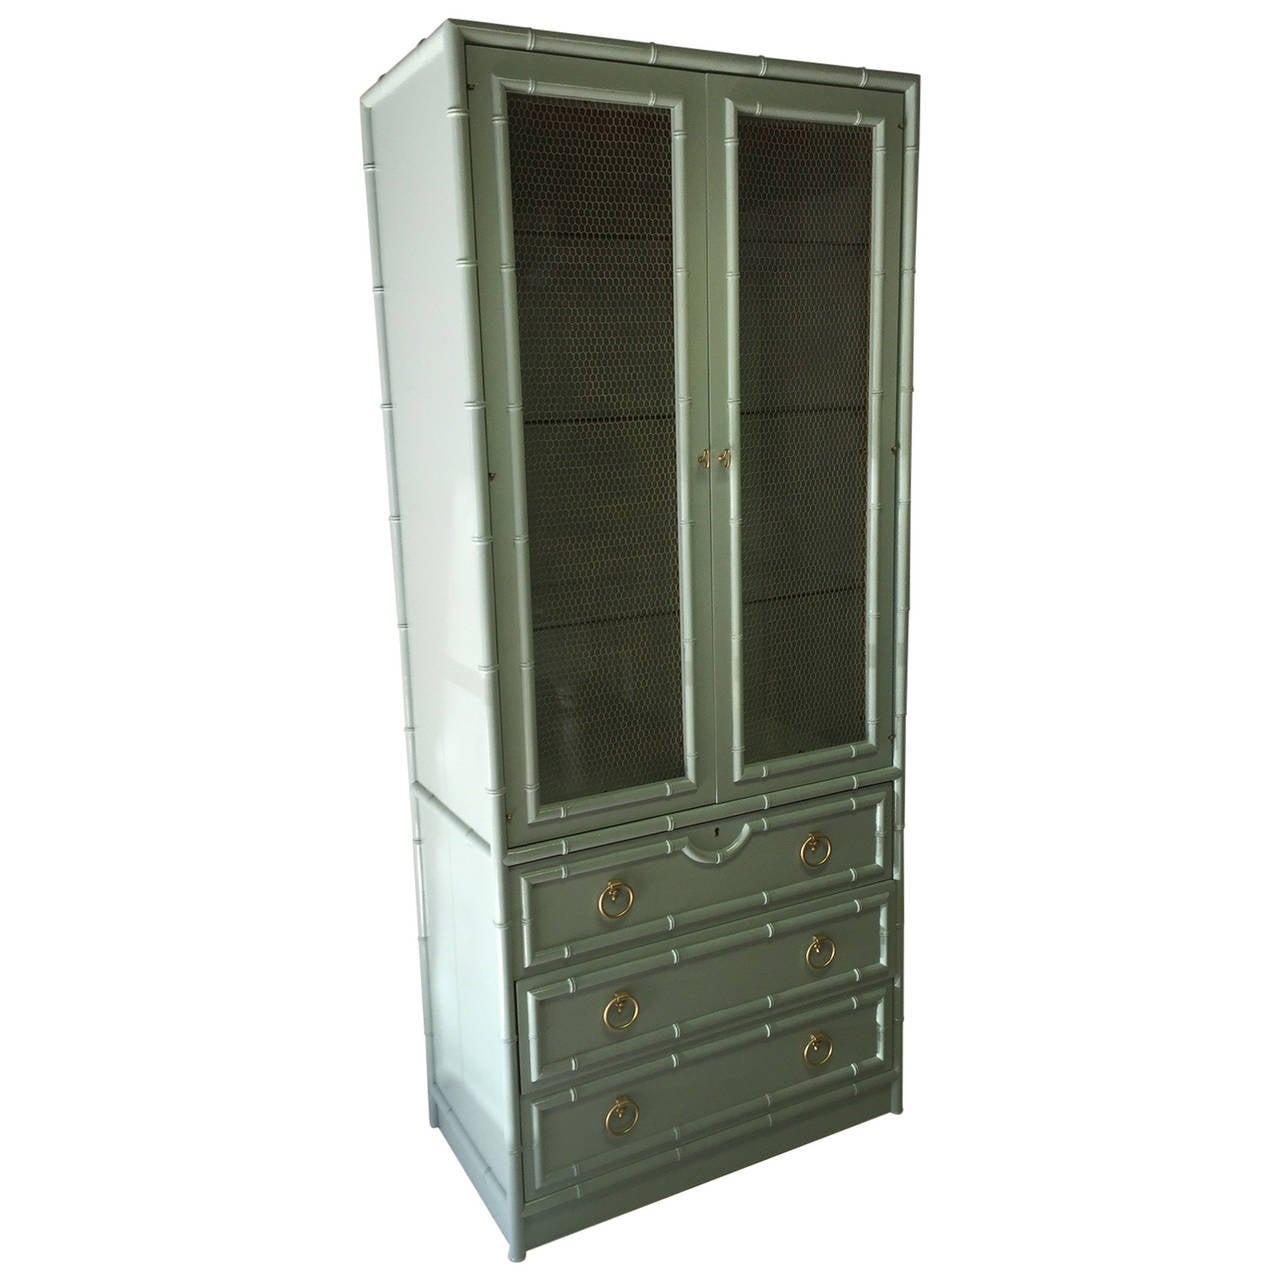 Faux bamboo lacquered vintage cabinet at 1stdibs for Bamboo kitchen cabinets for sale